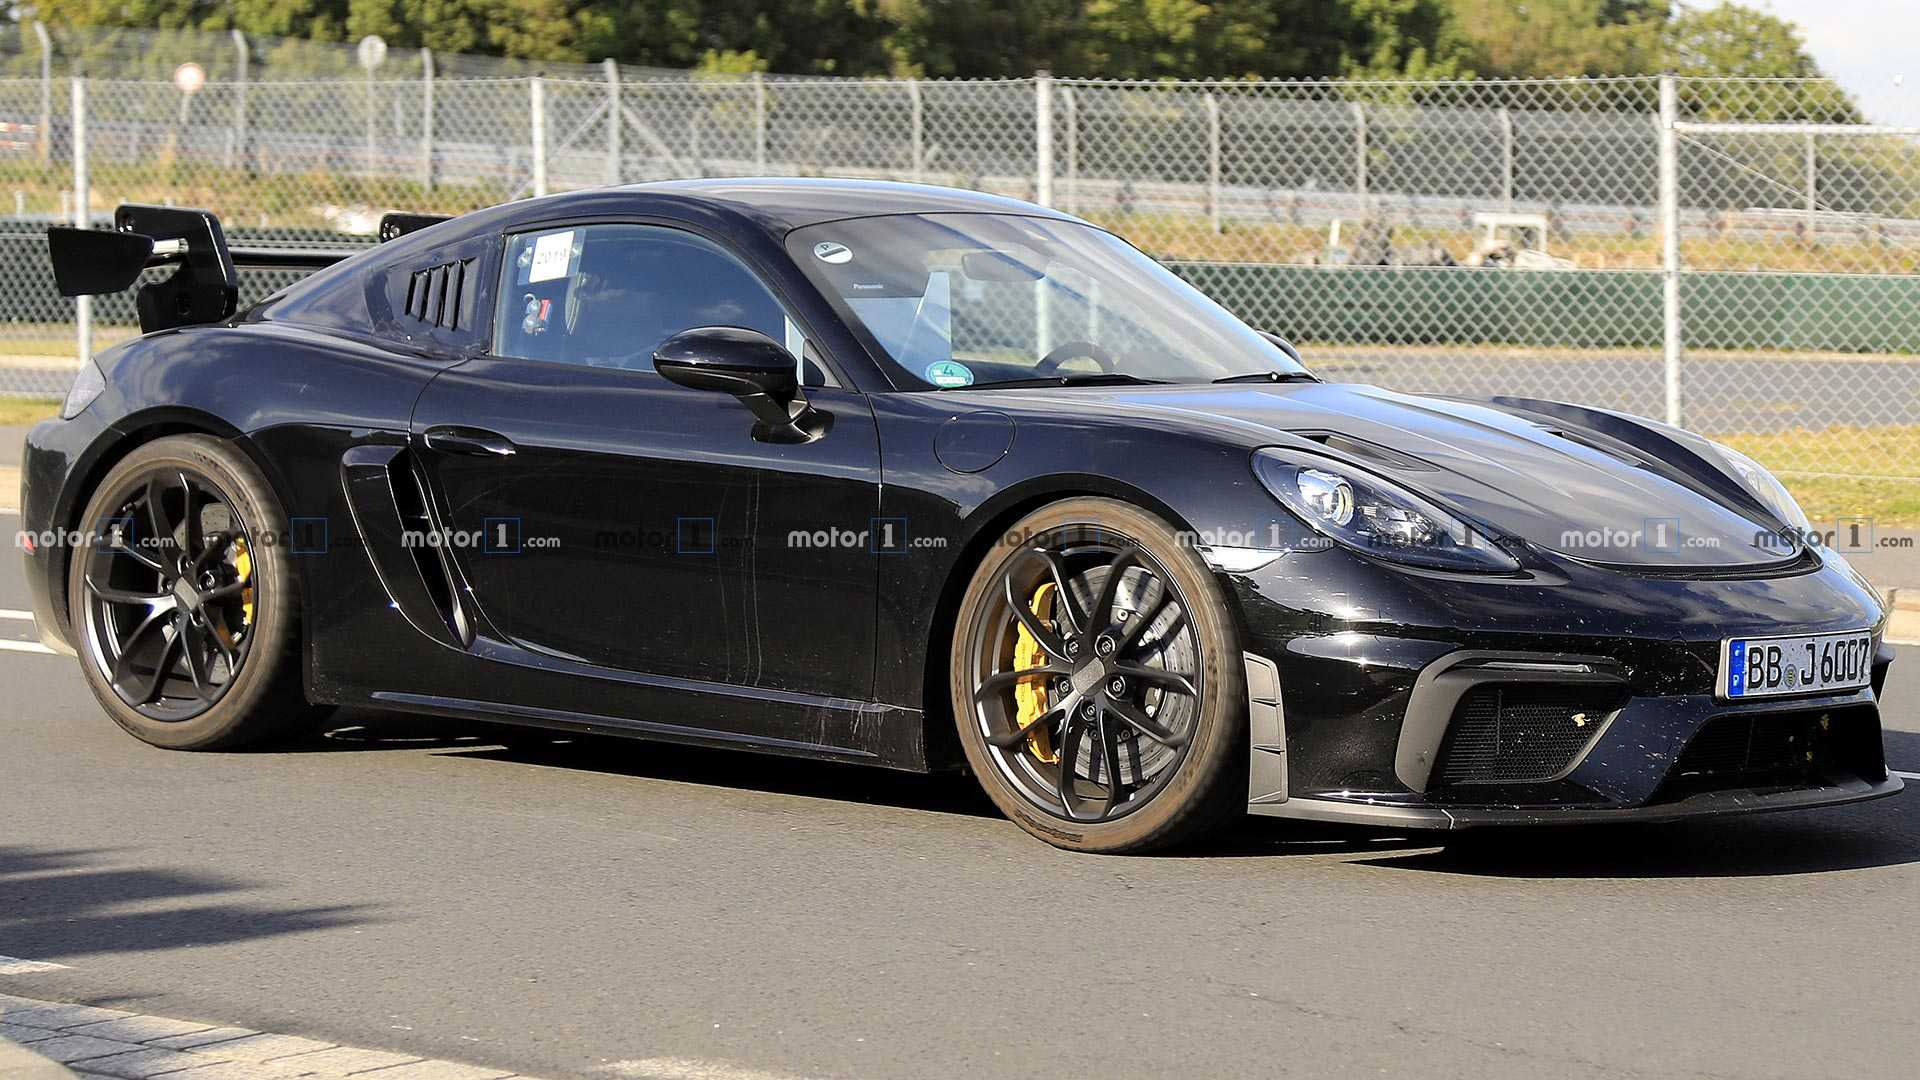 Porsche 718 Cayman GT4 RS Spied Looking Lean And Mean